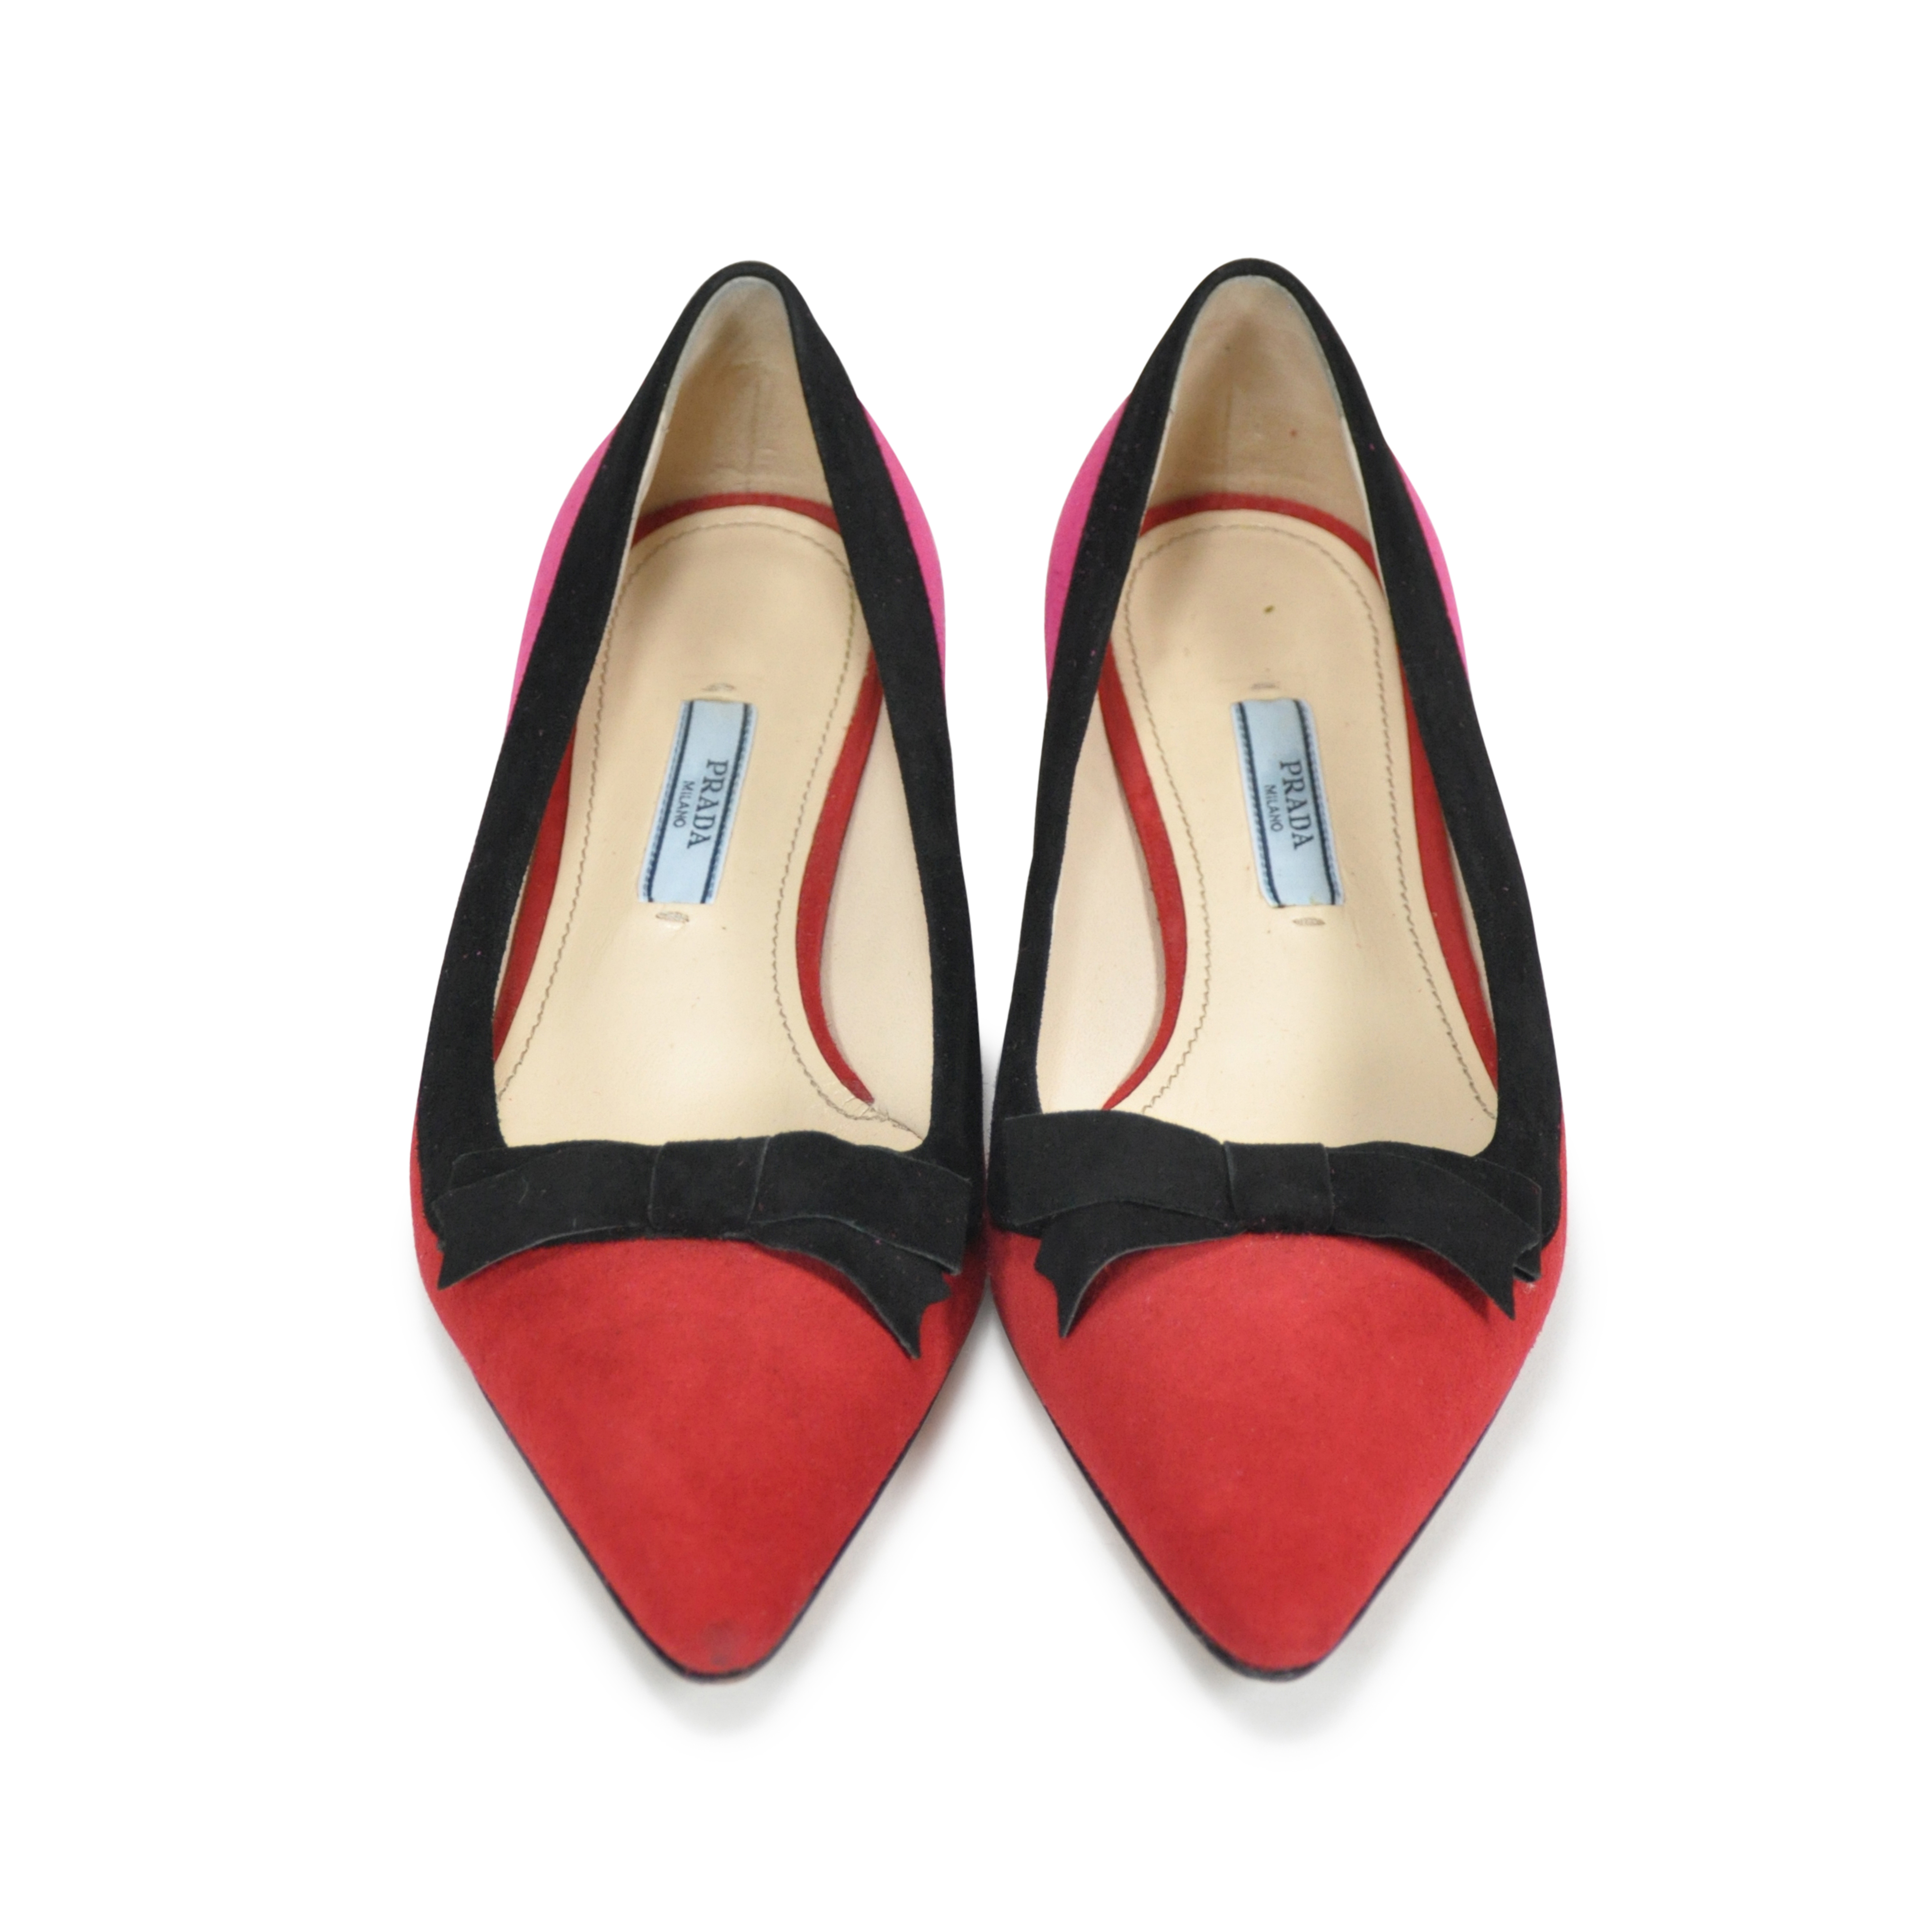 3404a8f90 Authentic Second Hand Prada Suede Pointed Toe Flats (PSS-145-00074) - THE  FIFTH COLLECTION